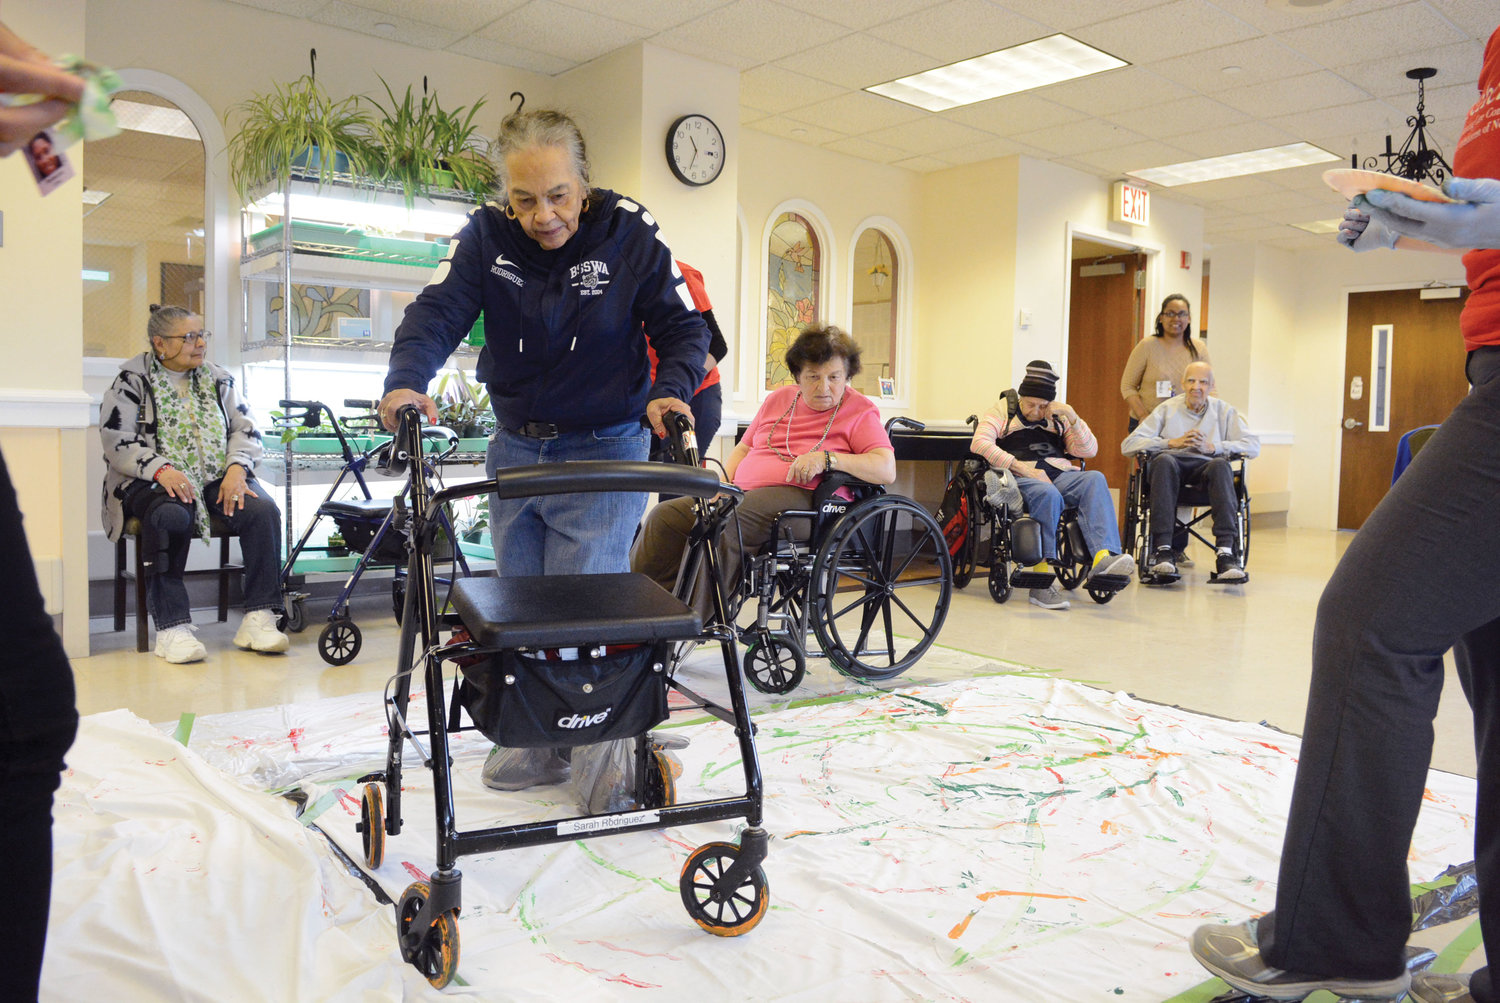 Bronx senior citizens turn their canes, wheelchairs and walkers into paintbrushes as part of a recreation therapy program at ArchCare Senior Life at San Vicente de Paul, the Bronx.